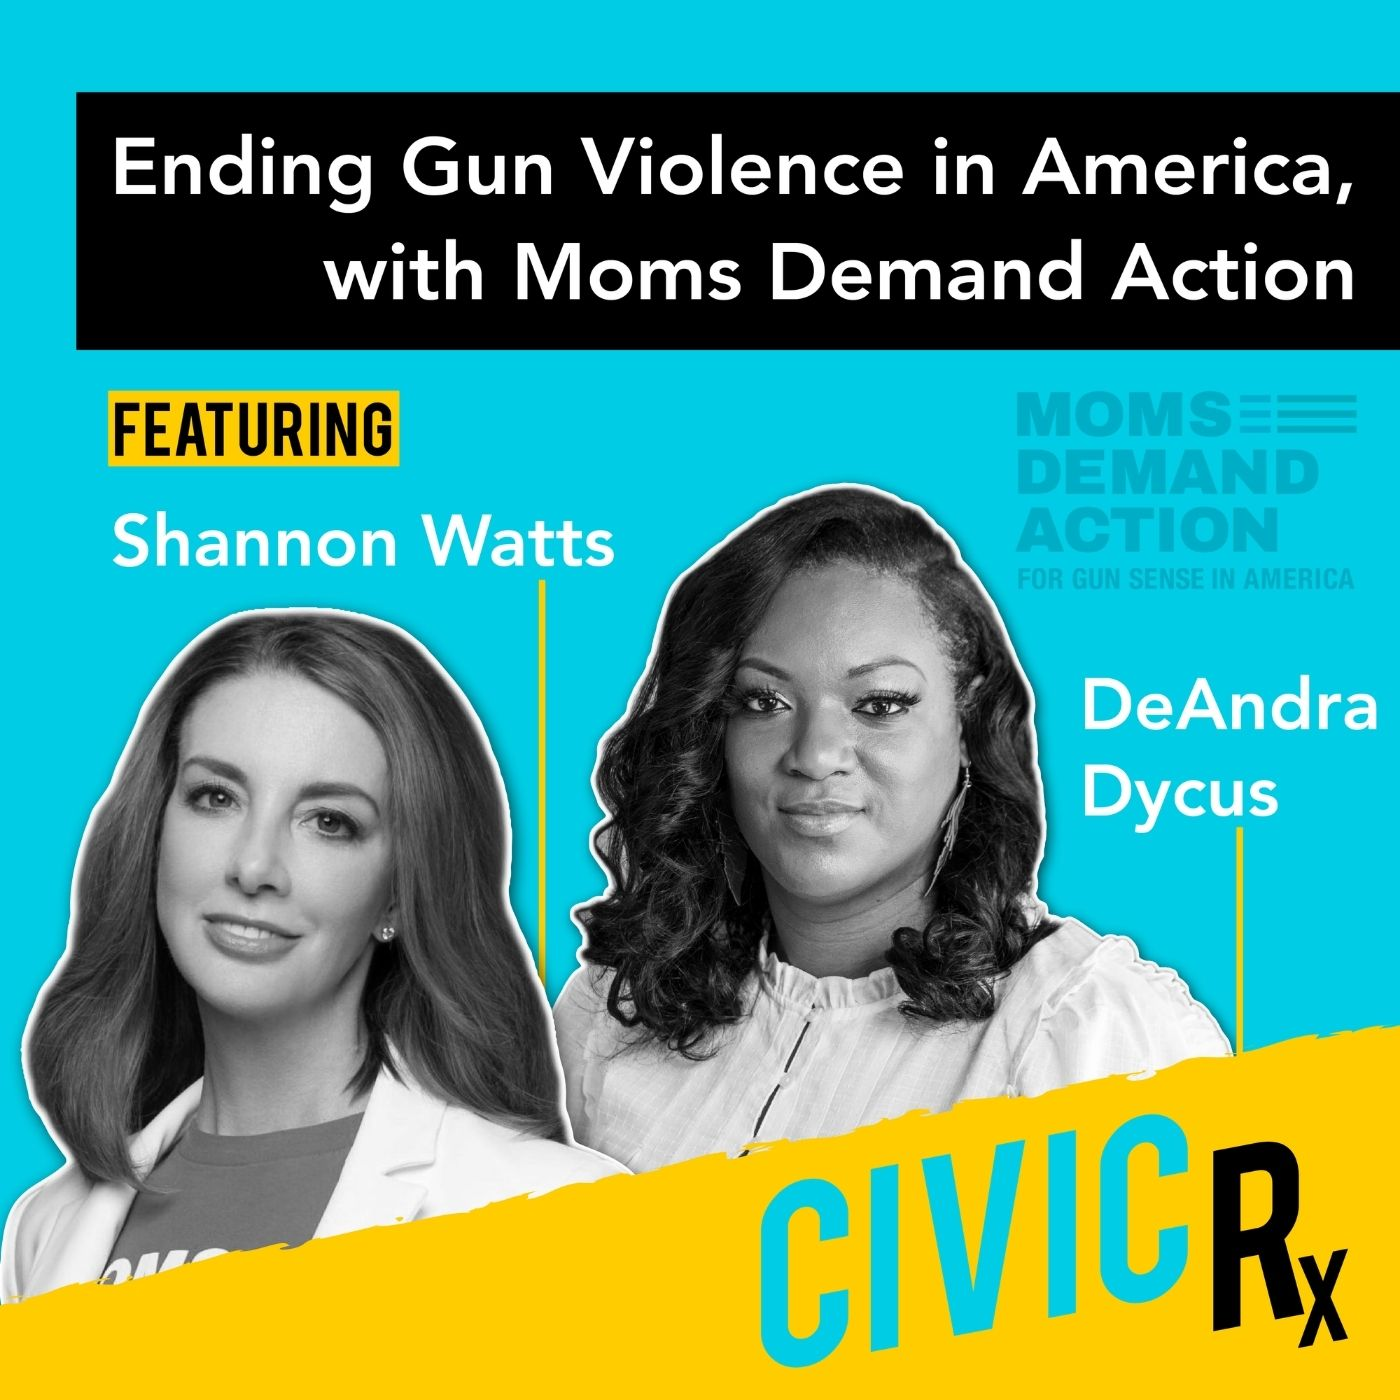 It's time to end gun violence in America, featuring Moms Demand Action's Shannon Watts & DeAndra Dycus (EP.29)